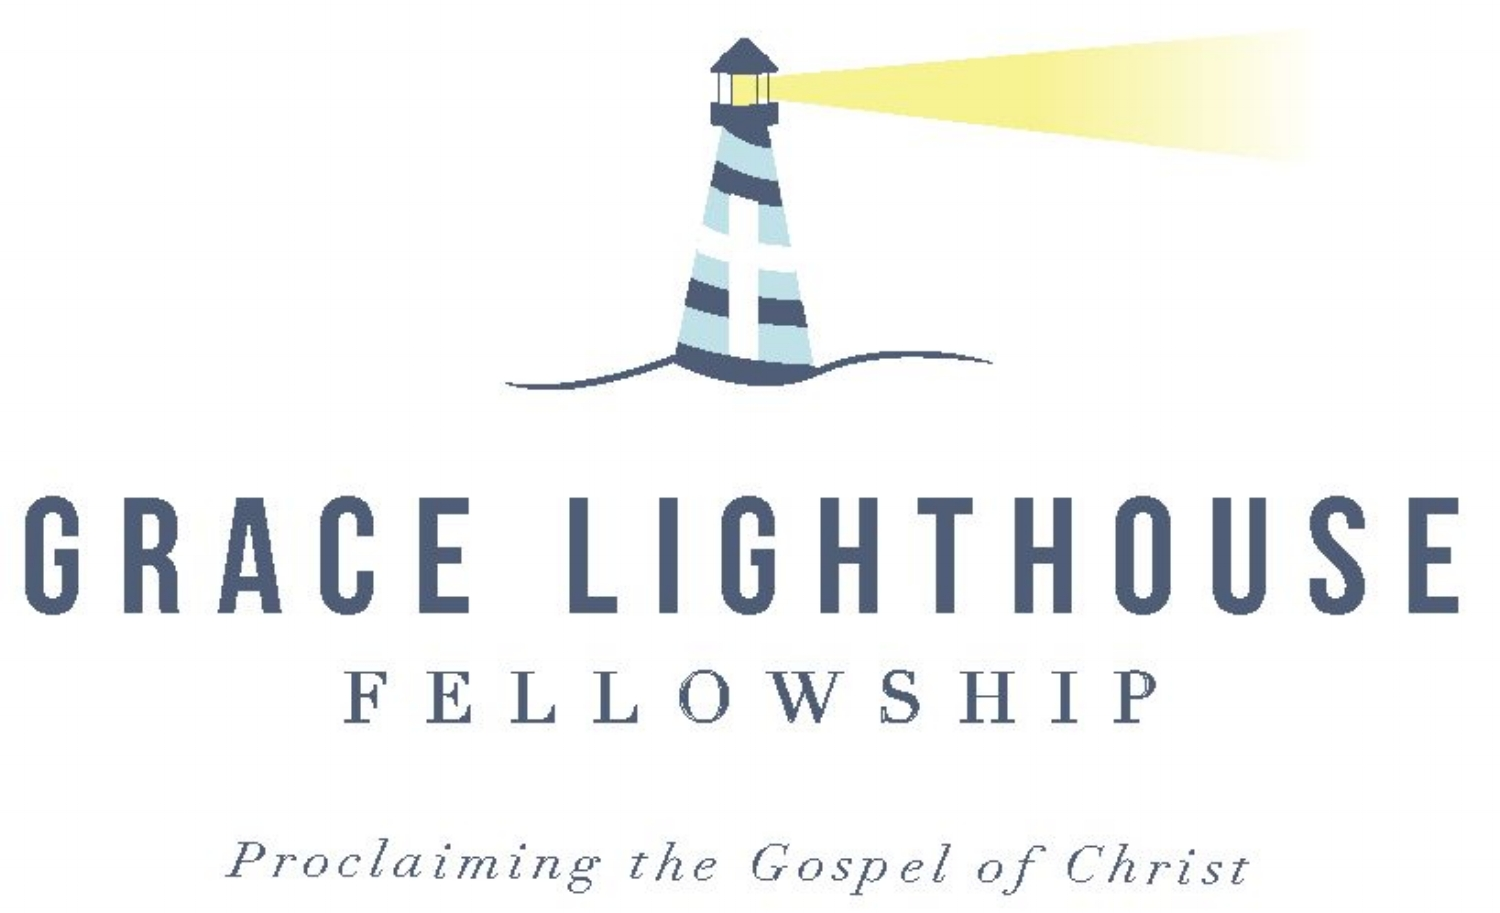 Grace Lighthouse Fellowship